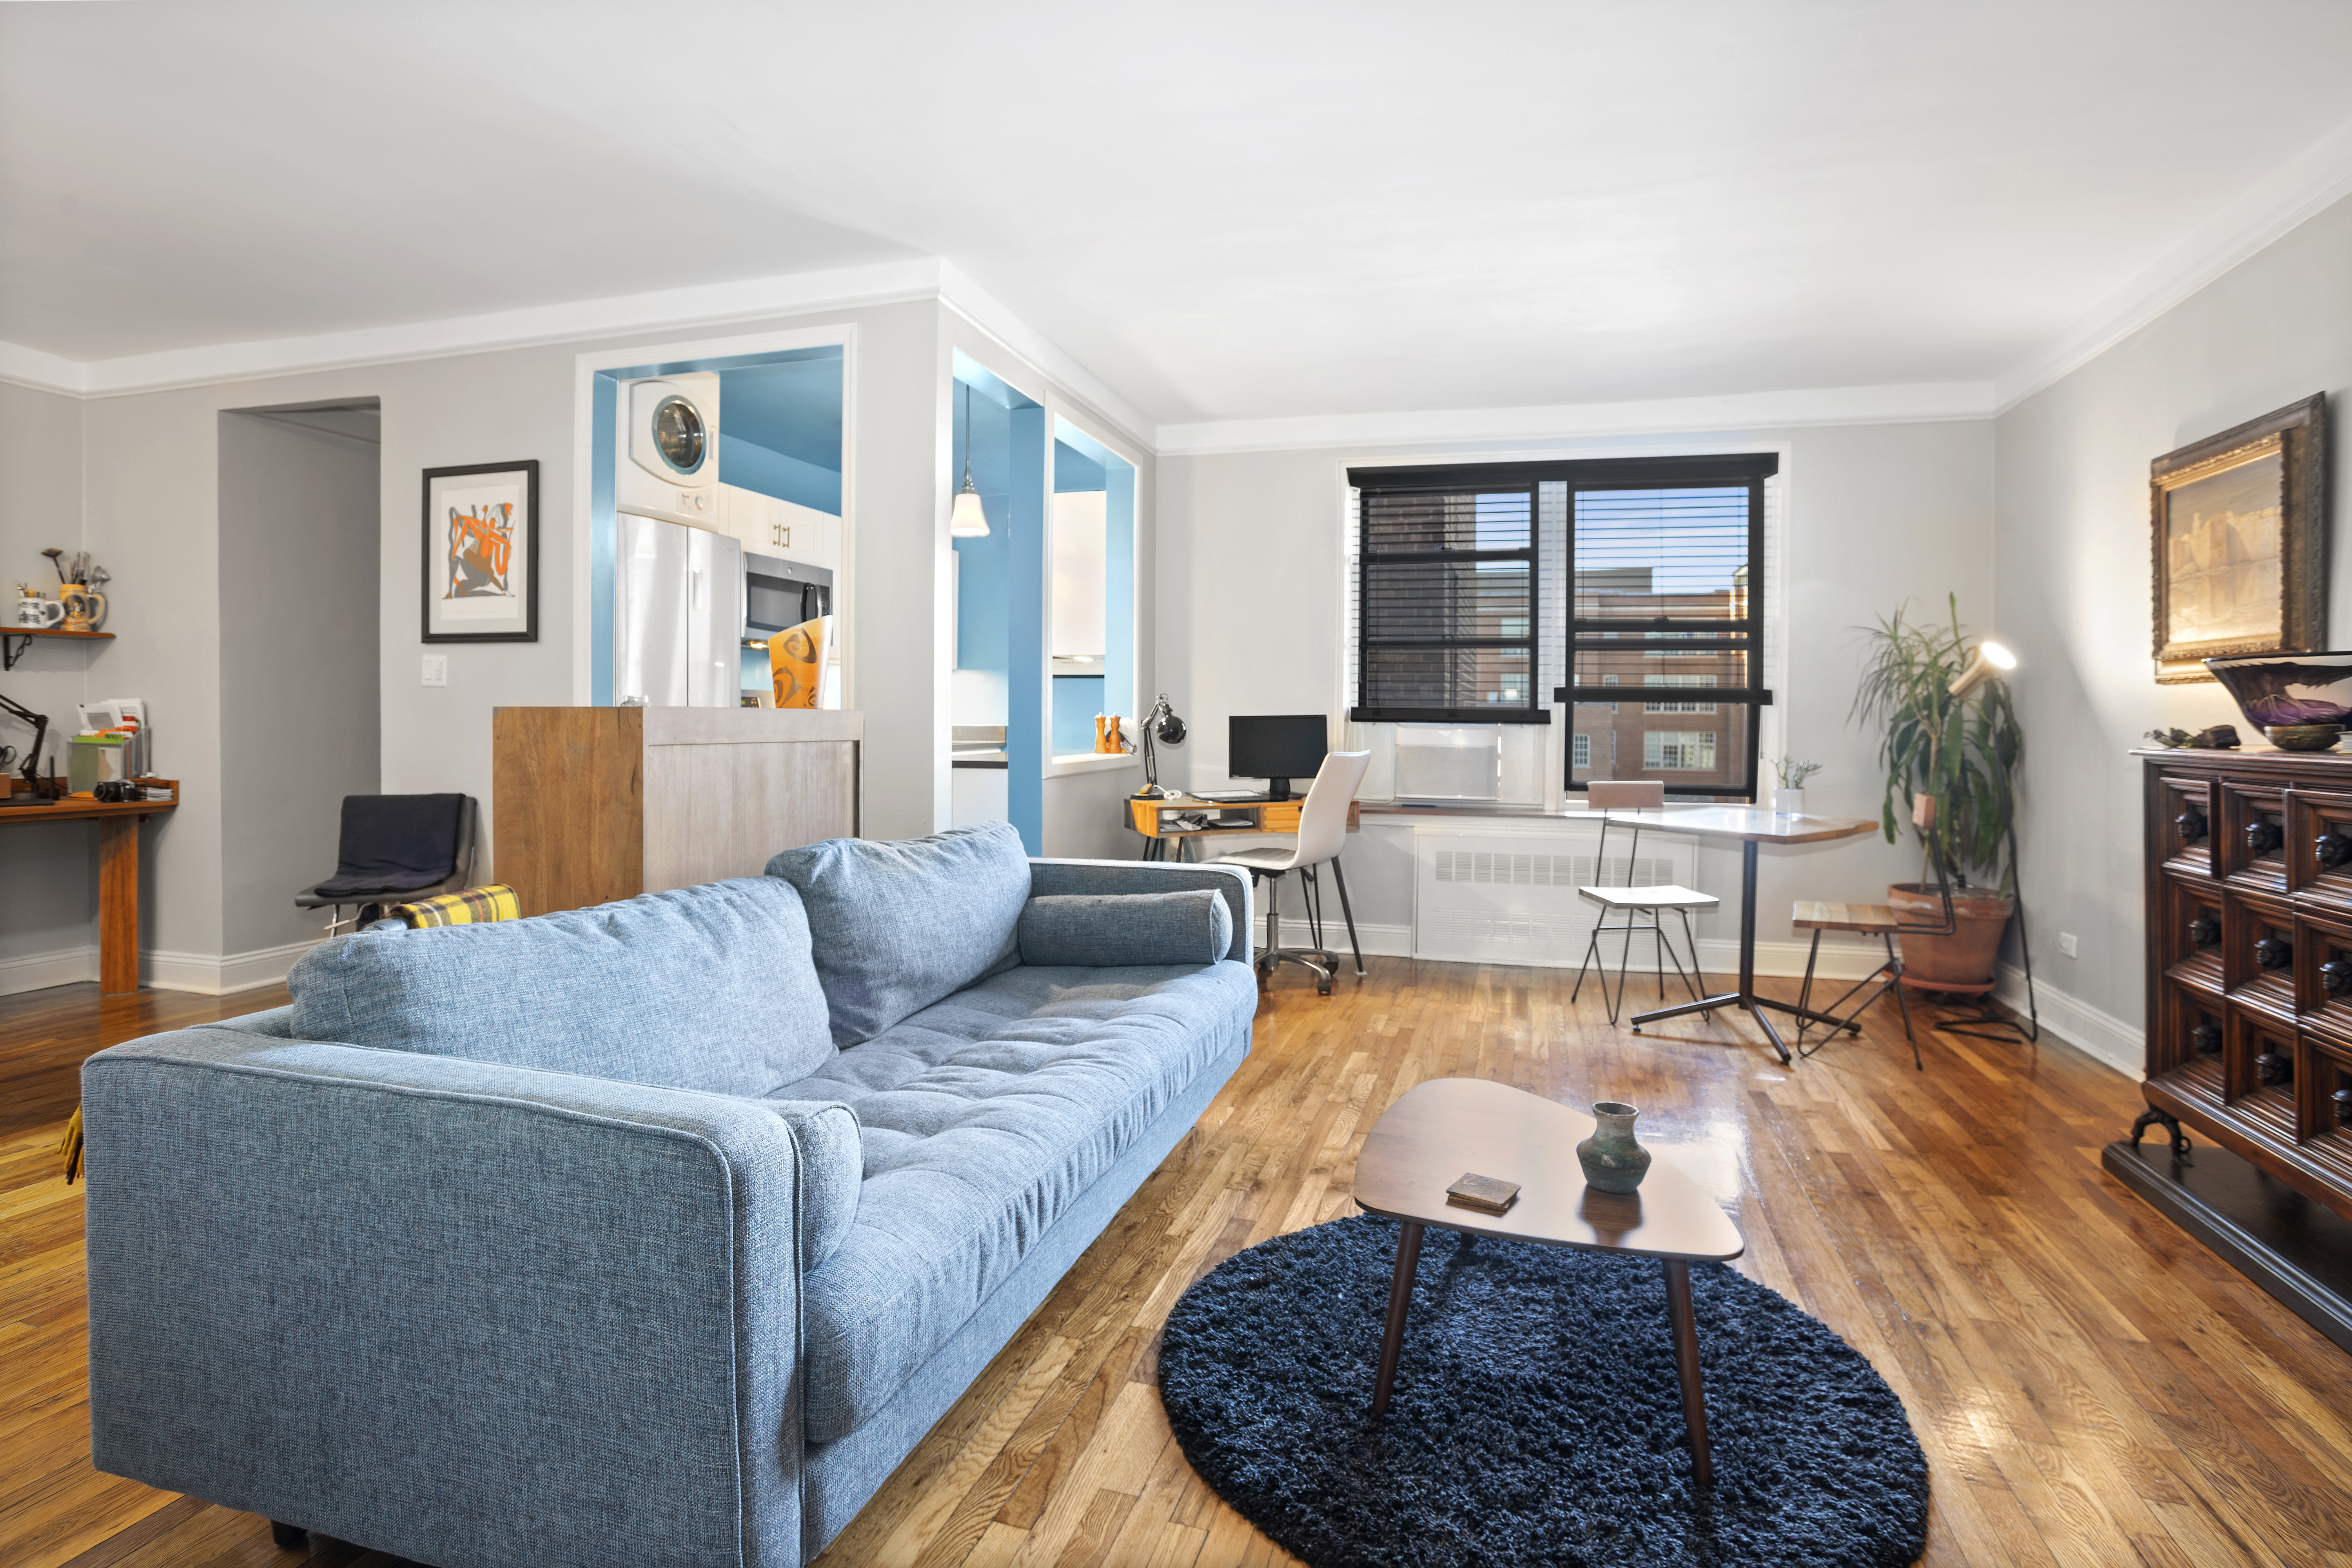 A living room with hardwood floors, a blue couch, white walls, a dark blue rug, and a small wood coffee table.